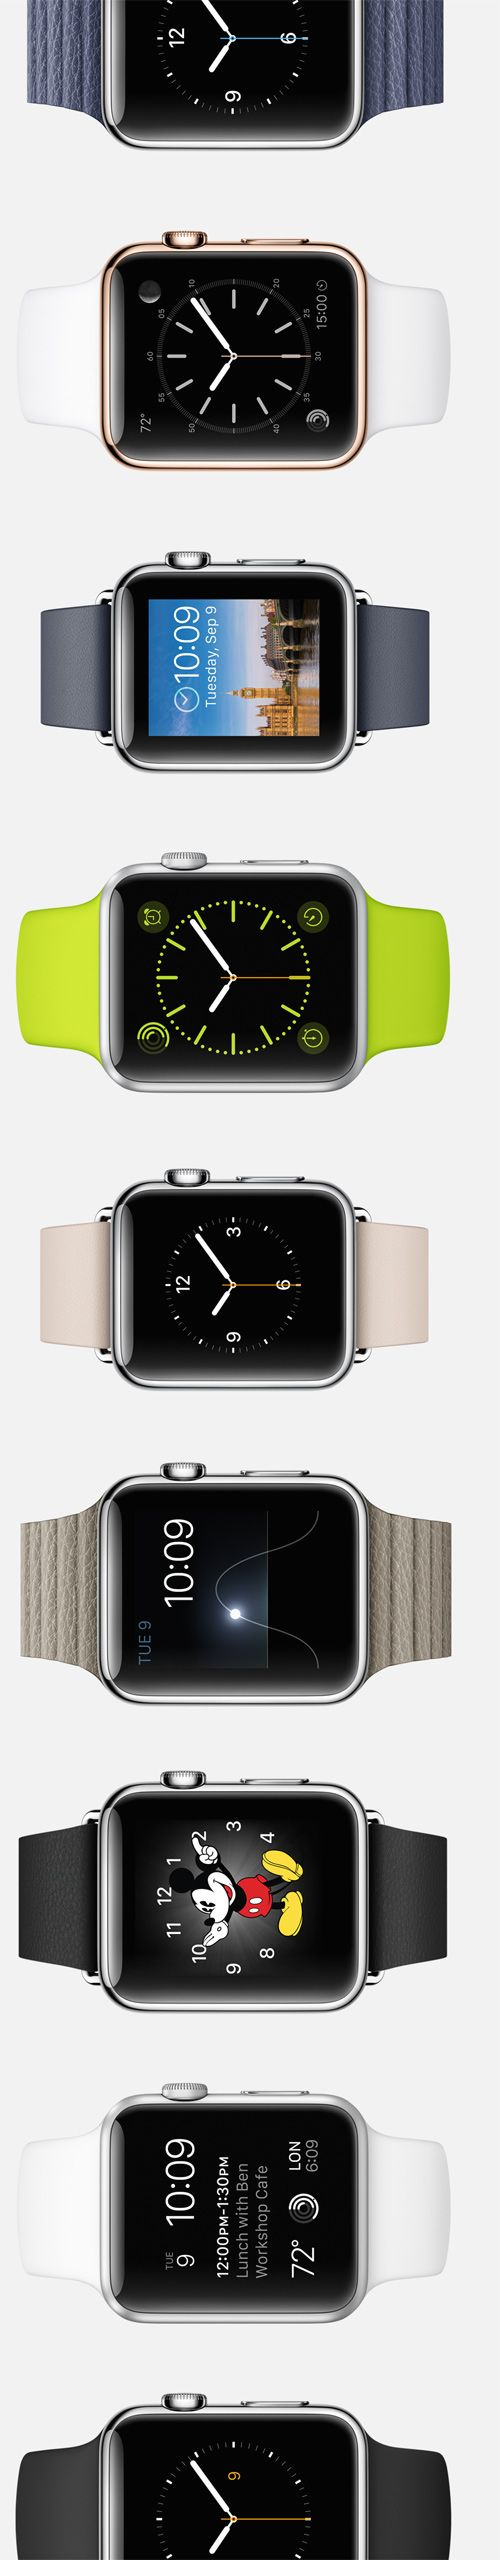 Damn watches sold out in 10 mins at 12:10am.  Did more sales in 10 mins for our watch them Samsung has done in 1 year for their smart watch.  #BuyMoreAppleStock #Apple #Technology